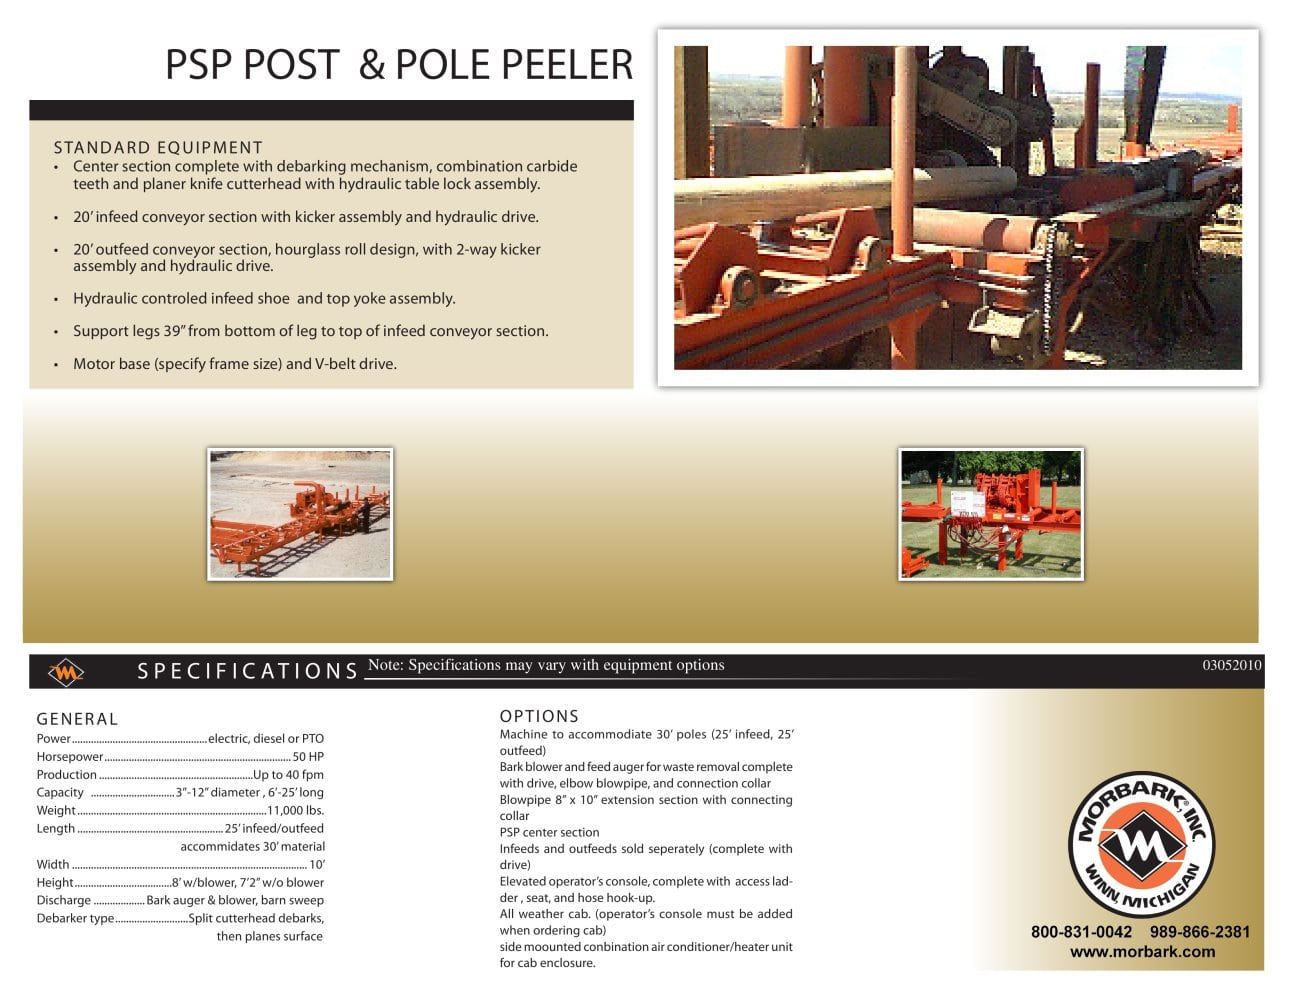 PSP Pole and Post Peeler - 1 / 1 Pages